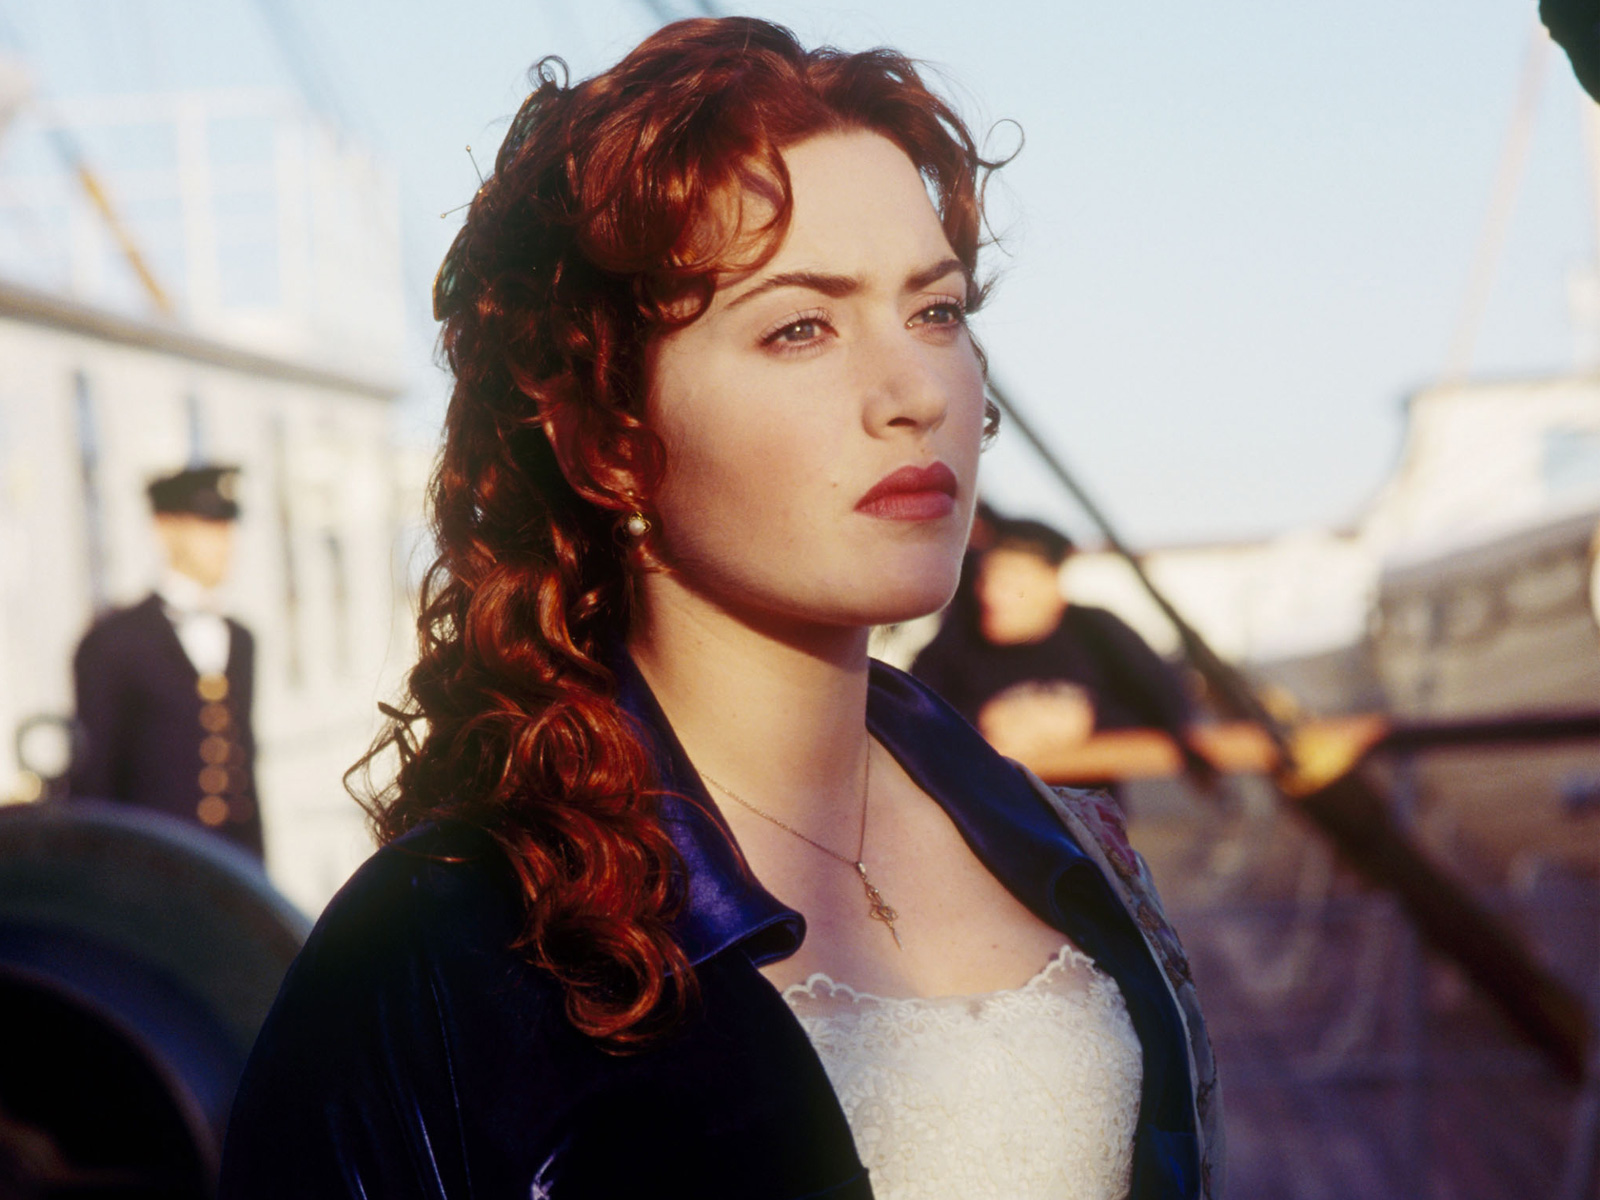 http://2.bp.blogspot.com/-WqmyxxJv90M/T40wE2ti0xI/AAAAAAAAEDw/FhtVG-5wa0c/s1600/The-best-top-hd-desktop-kate-winslet-wallpaper-kate-winslet-wallpapers-titanic-wallpaper-23.jpg